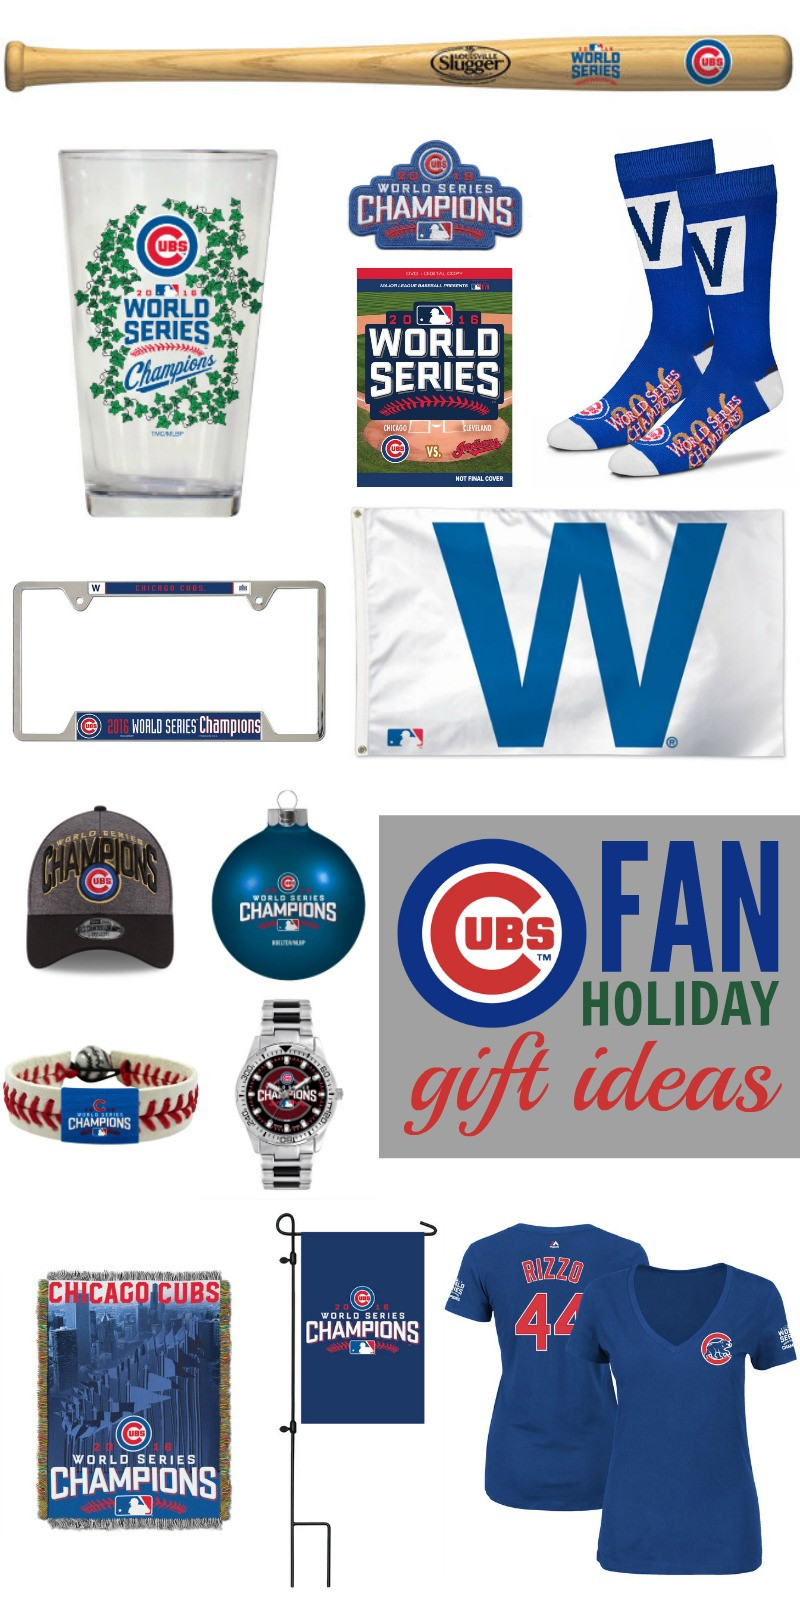 Best ideas about Chicago Cubs Gift Ideas . Save or Pin Cubs Fan Holiday Gift Ideas Shop with Unclaimed Funds Now.